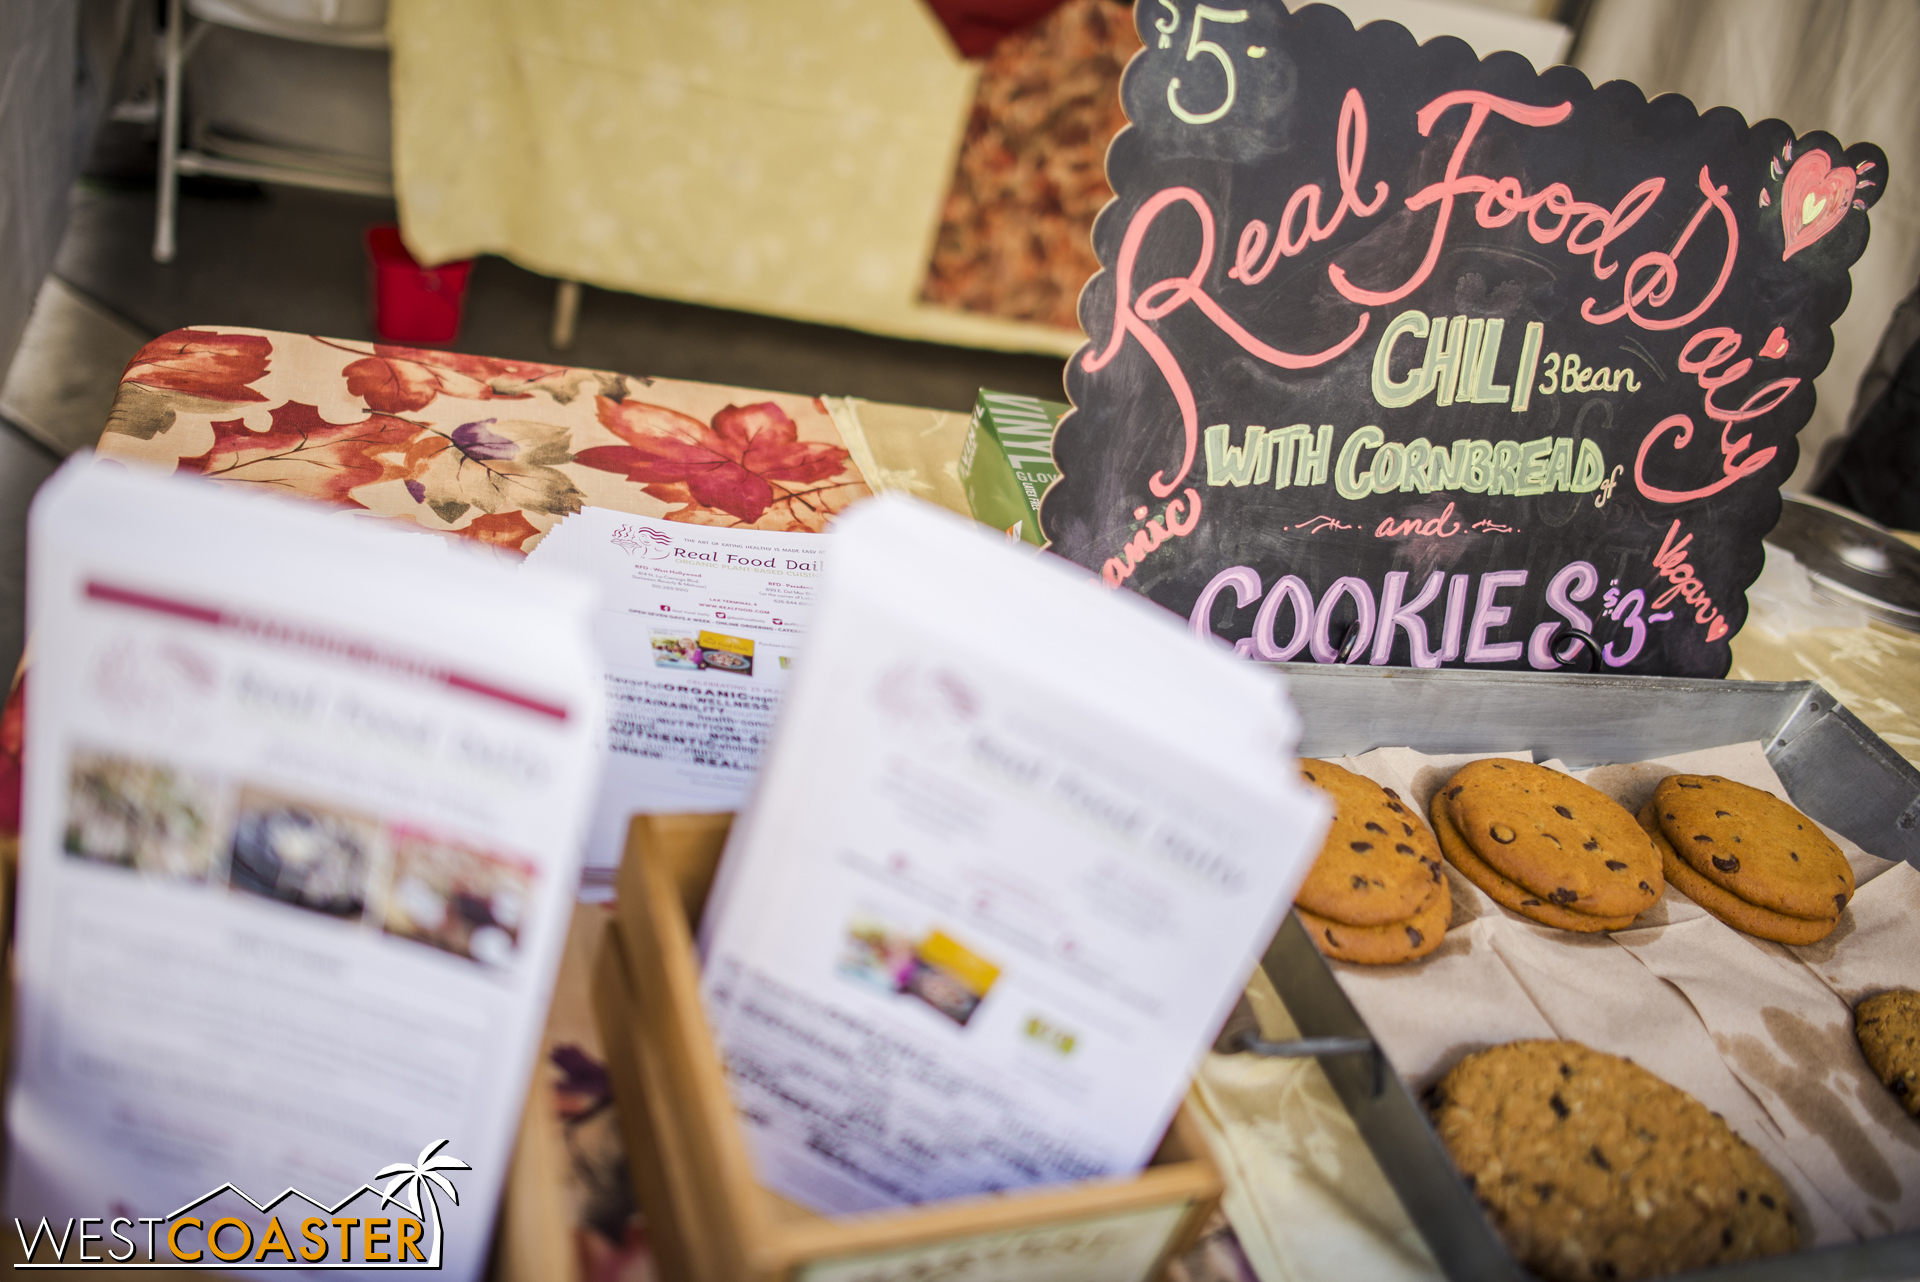 Local vendor Real Food Daily offered cookies and chili.